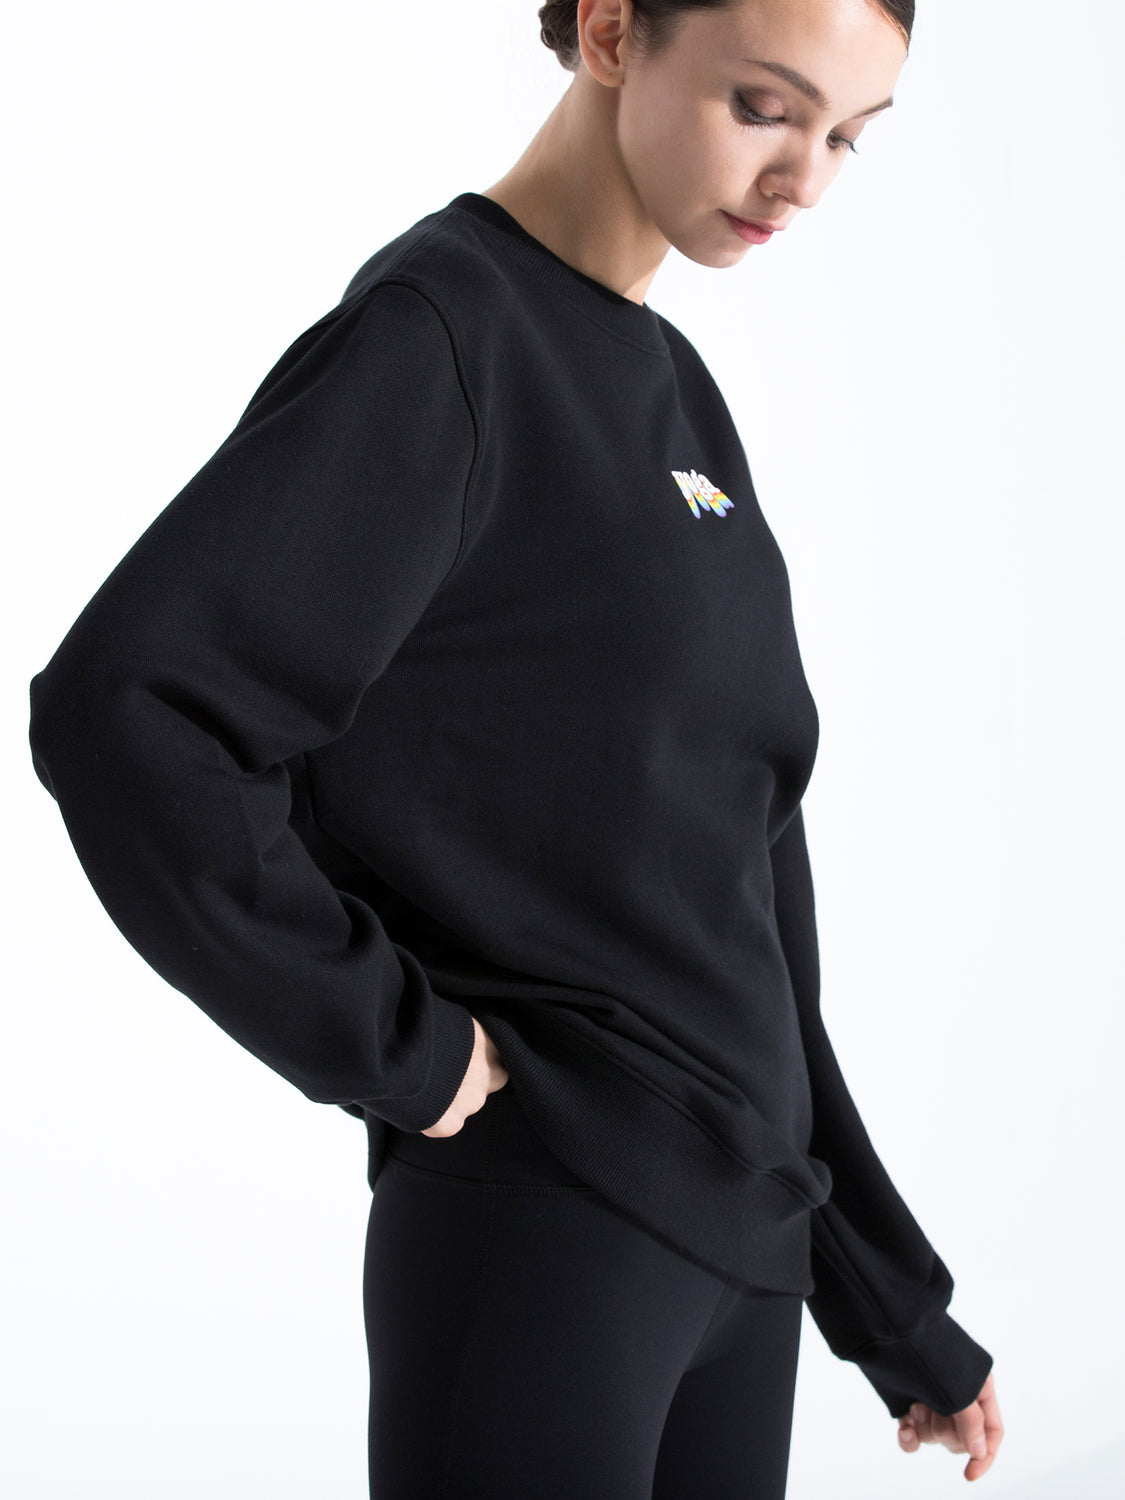 RAINBOW YOGA SWEATSHIRT, BLACK